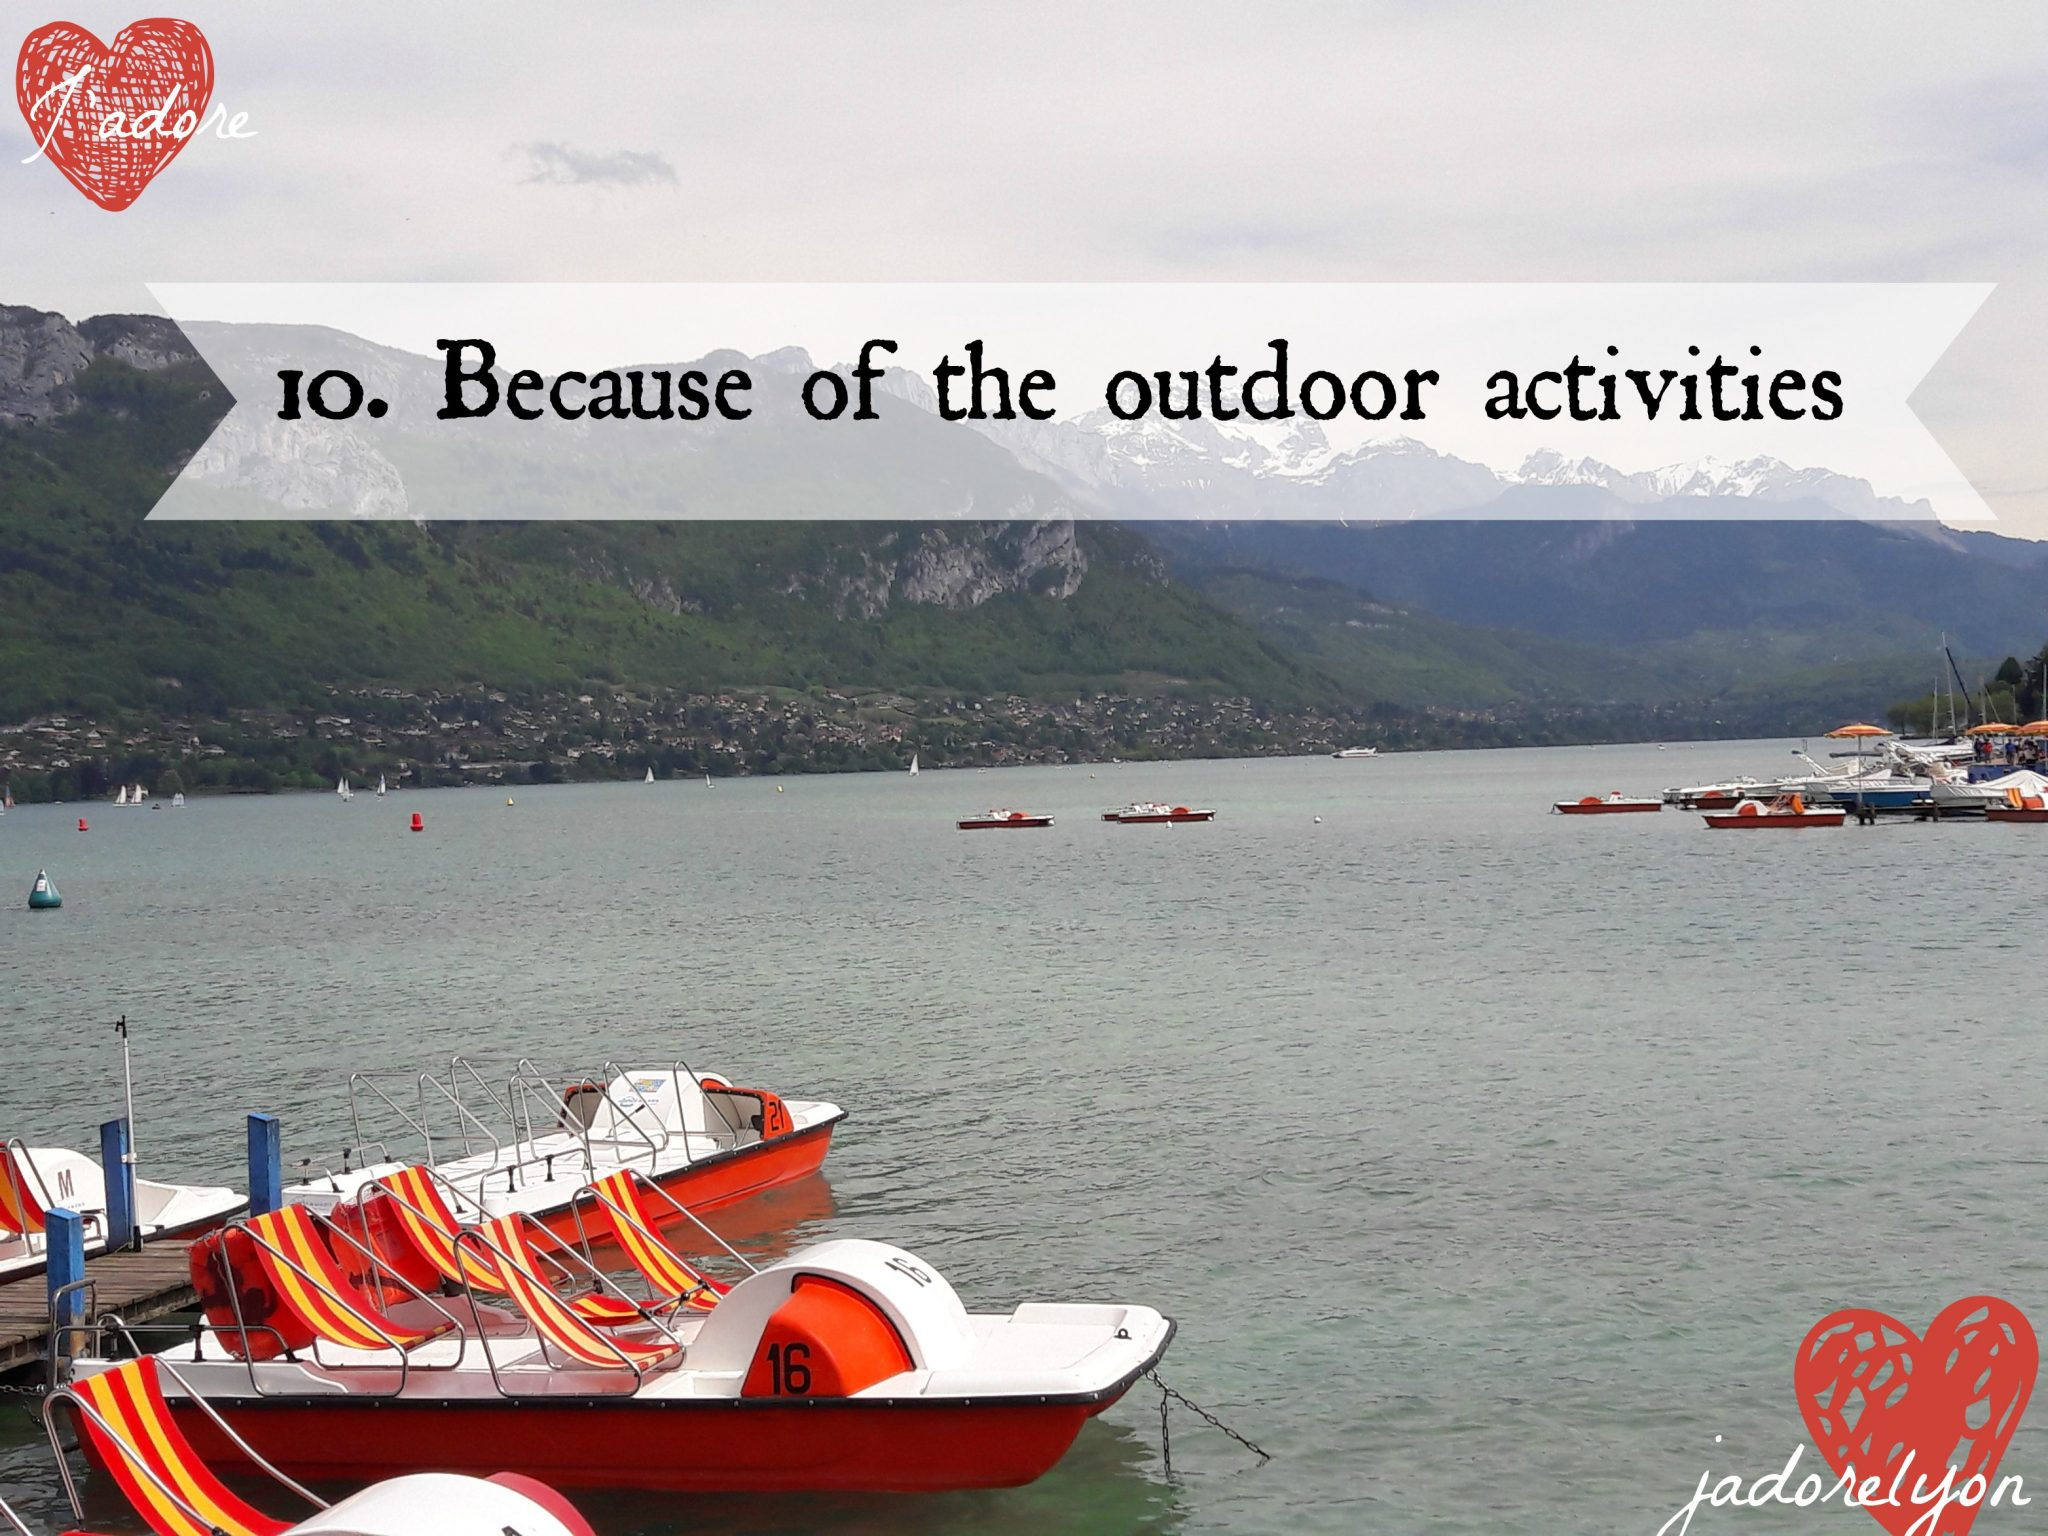 Visit Annecy because of the outdoor activities